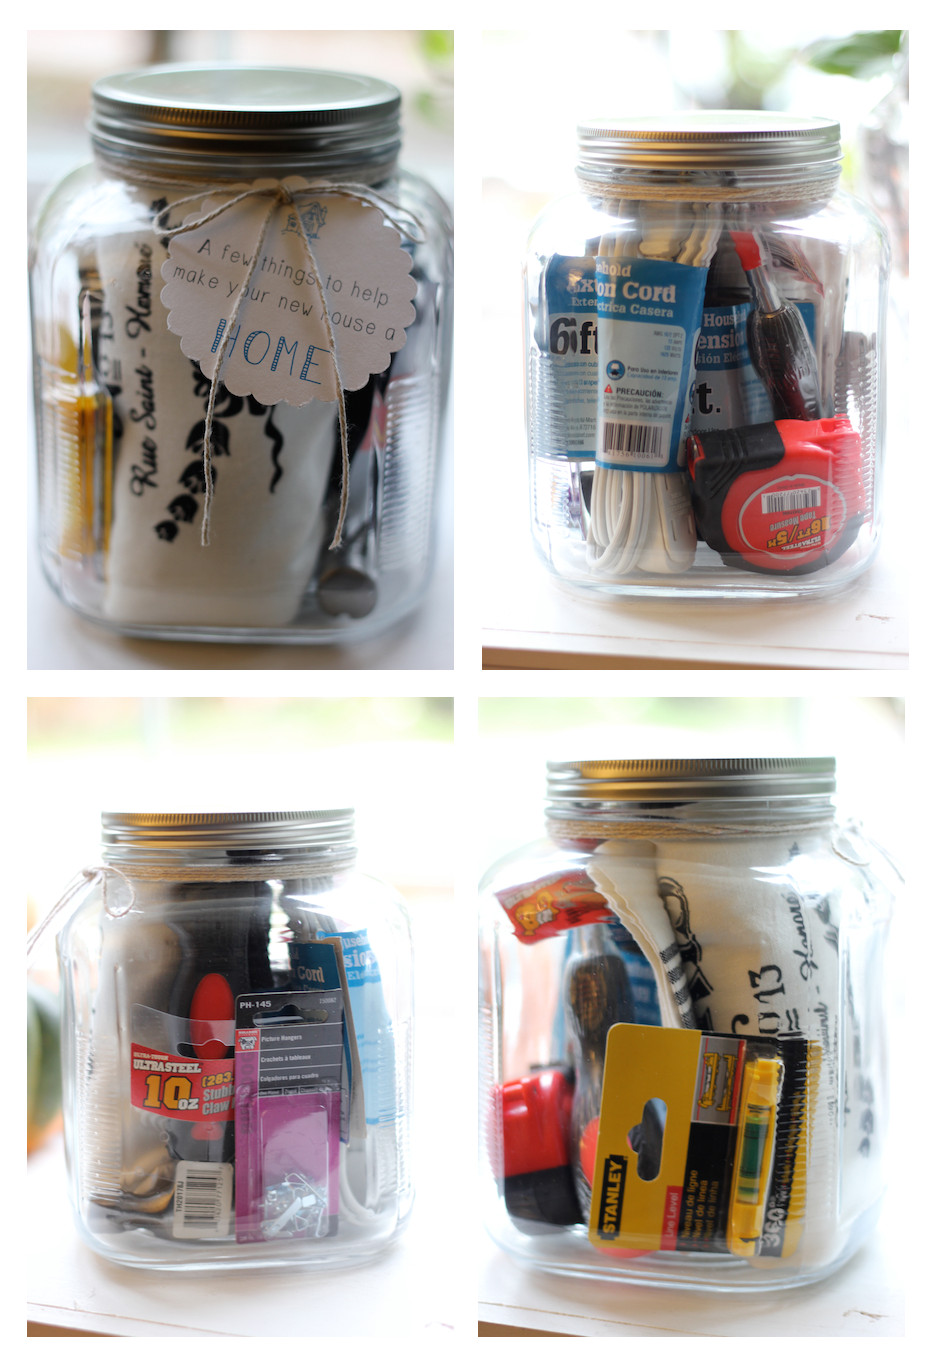 Best ideas about New Home Gift Ideas . Save or Pin Housewarming Gift Idea BeWhatWeLove Now.